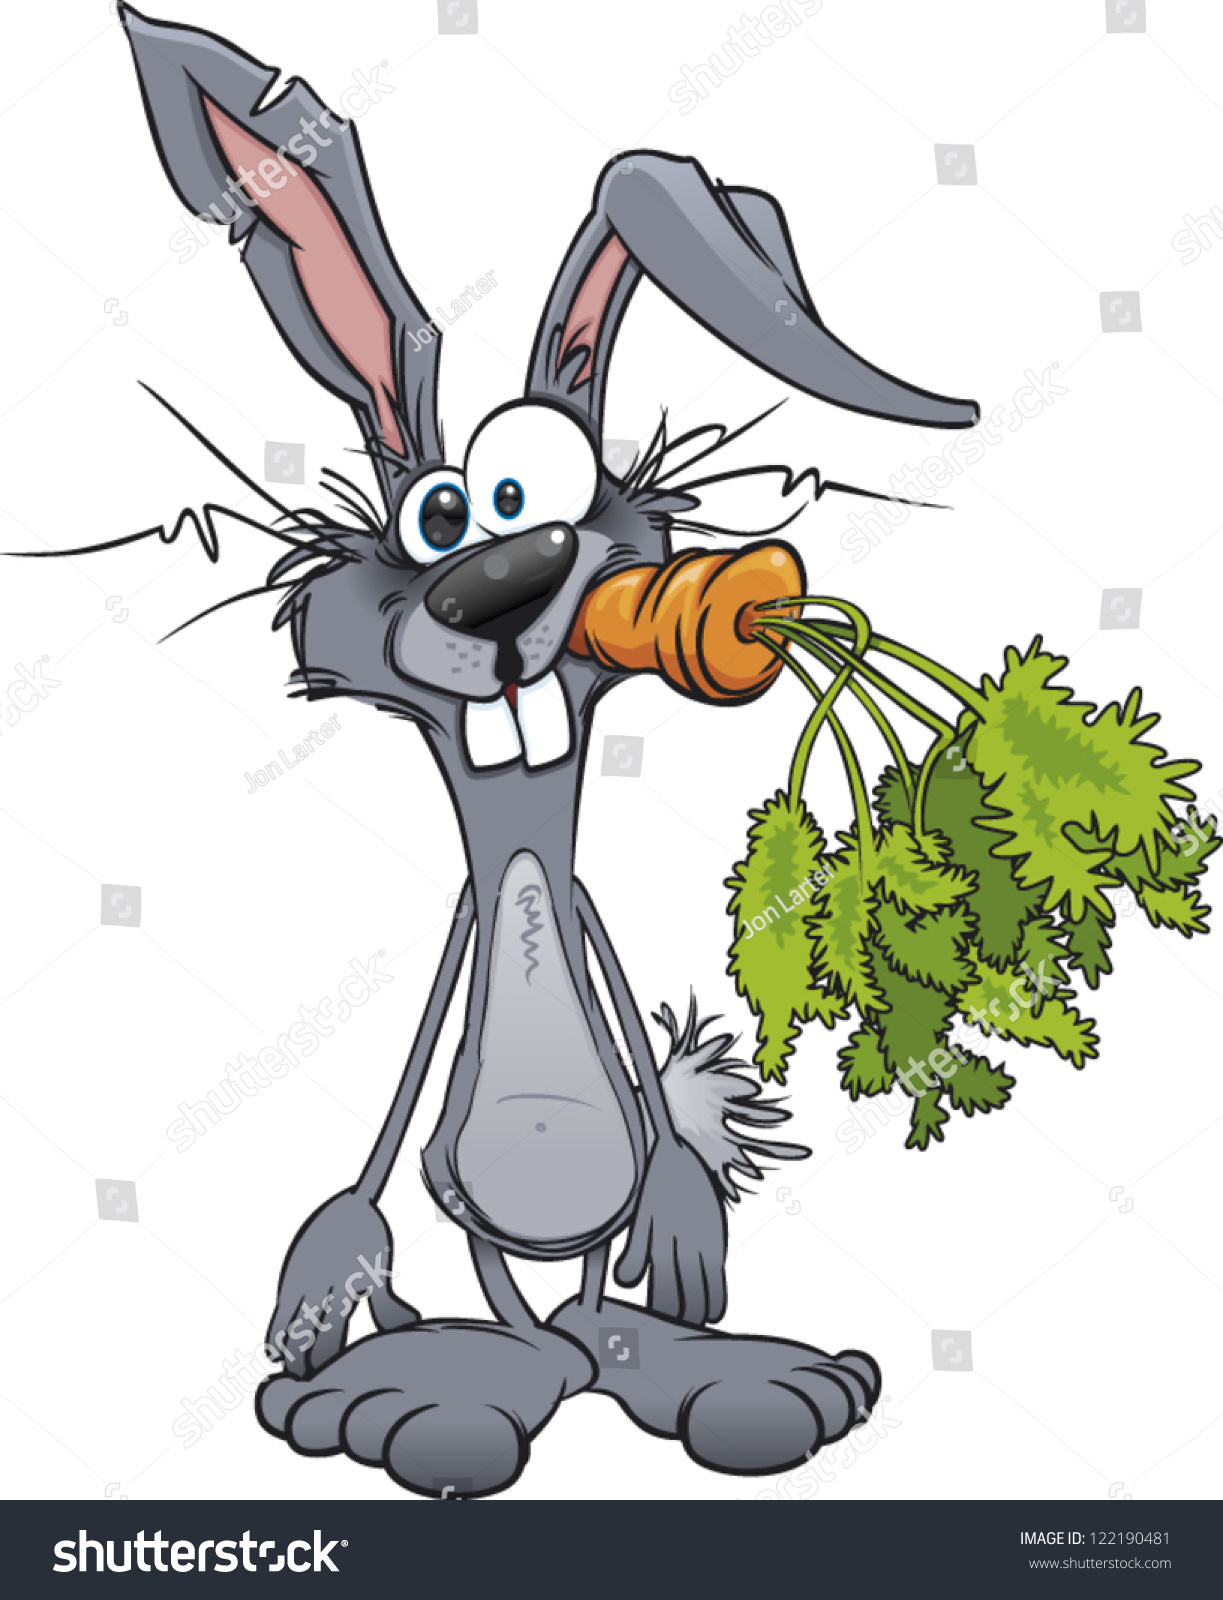 165641352 additionally Mad Cartoon Rabbit Eating Carrot 122190481 together with Long 20clipart 20tall in addition Clipart 4T9oX6XTE likewise Animals. on standing giraffe clip art